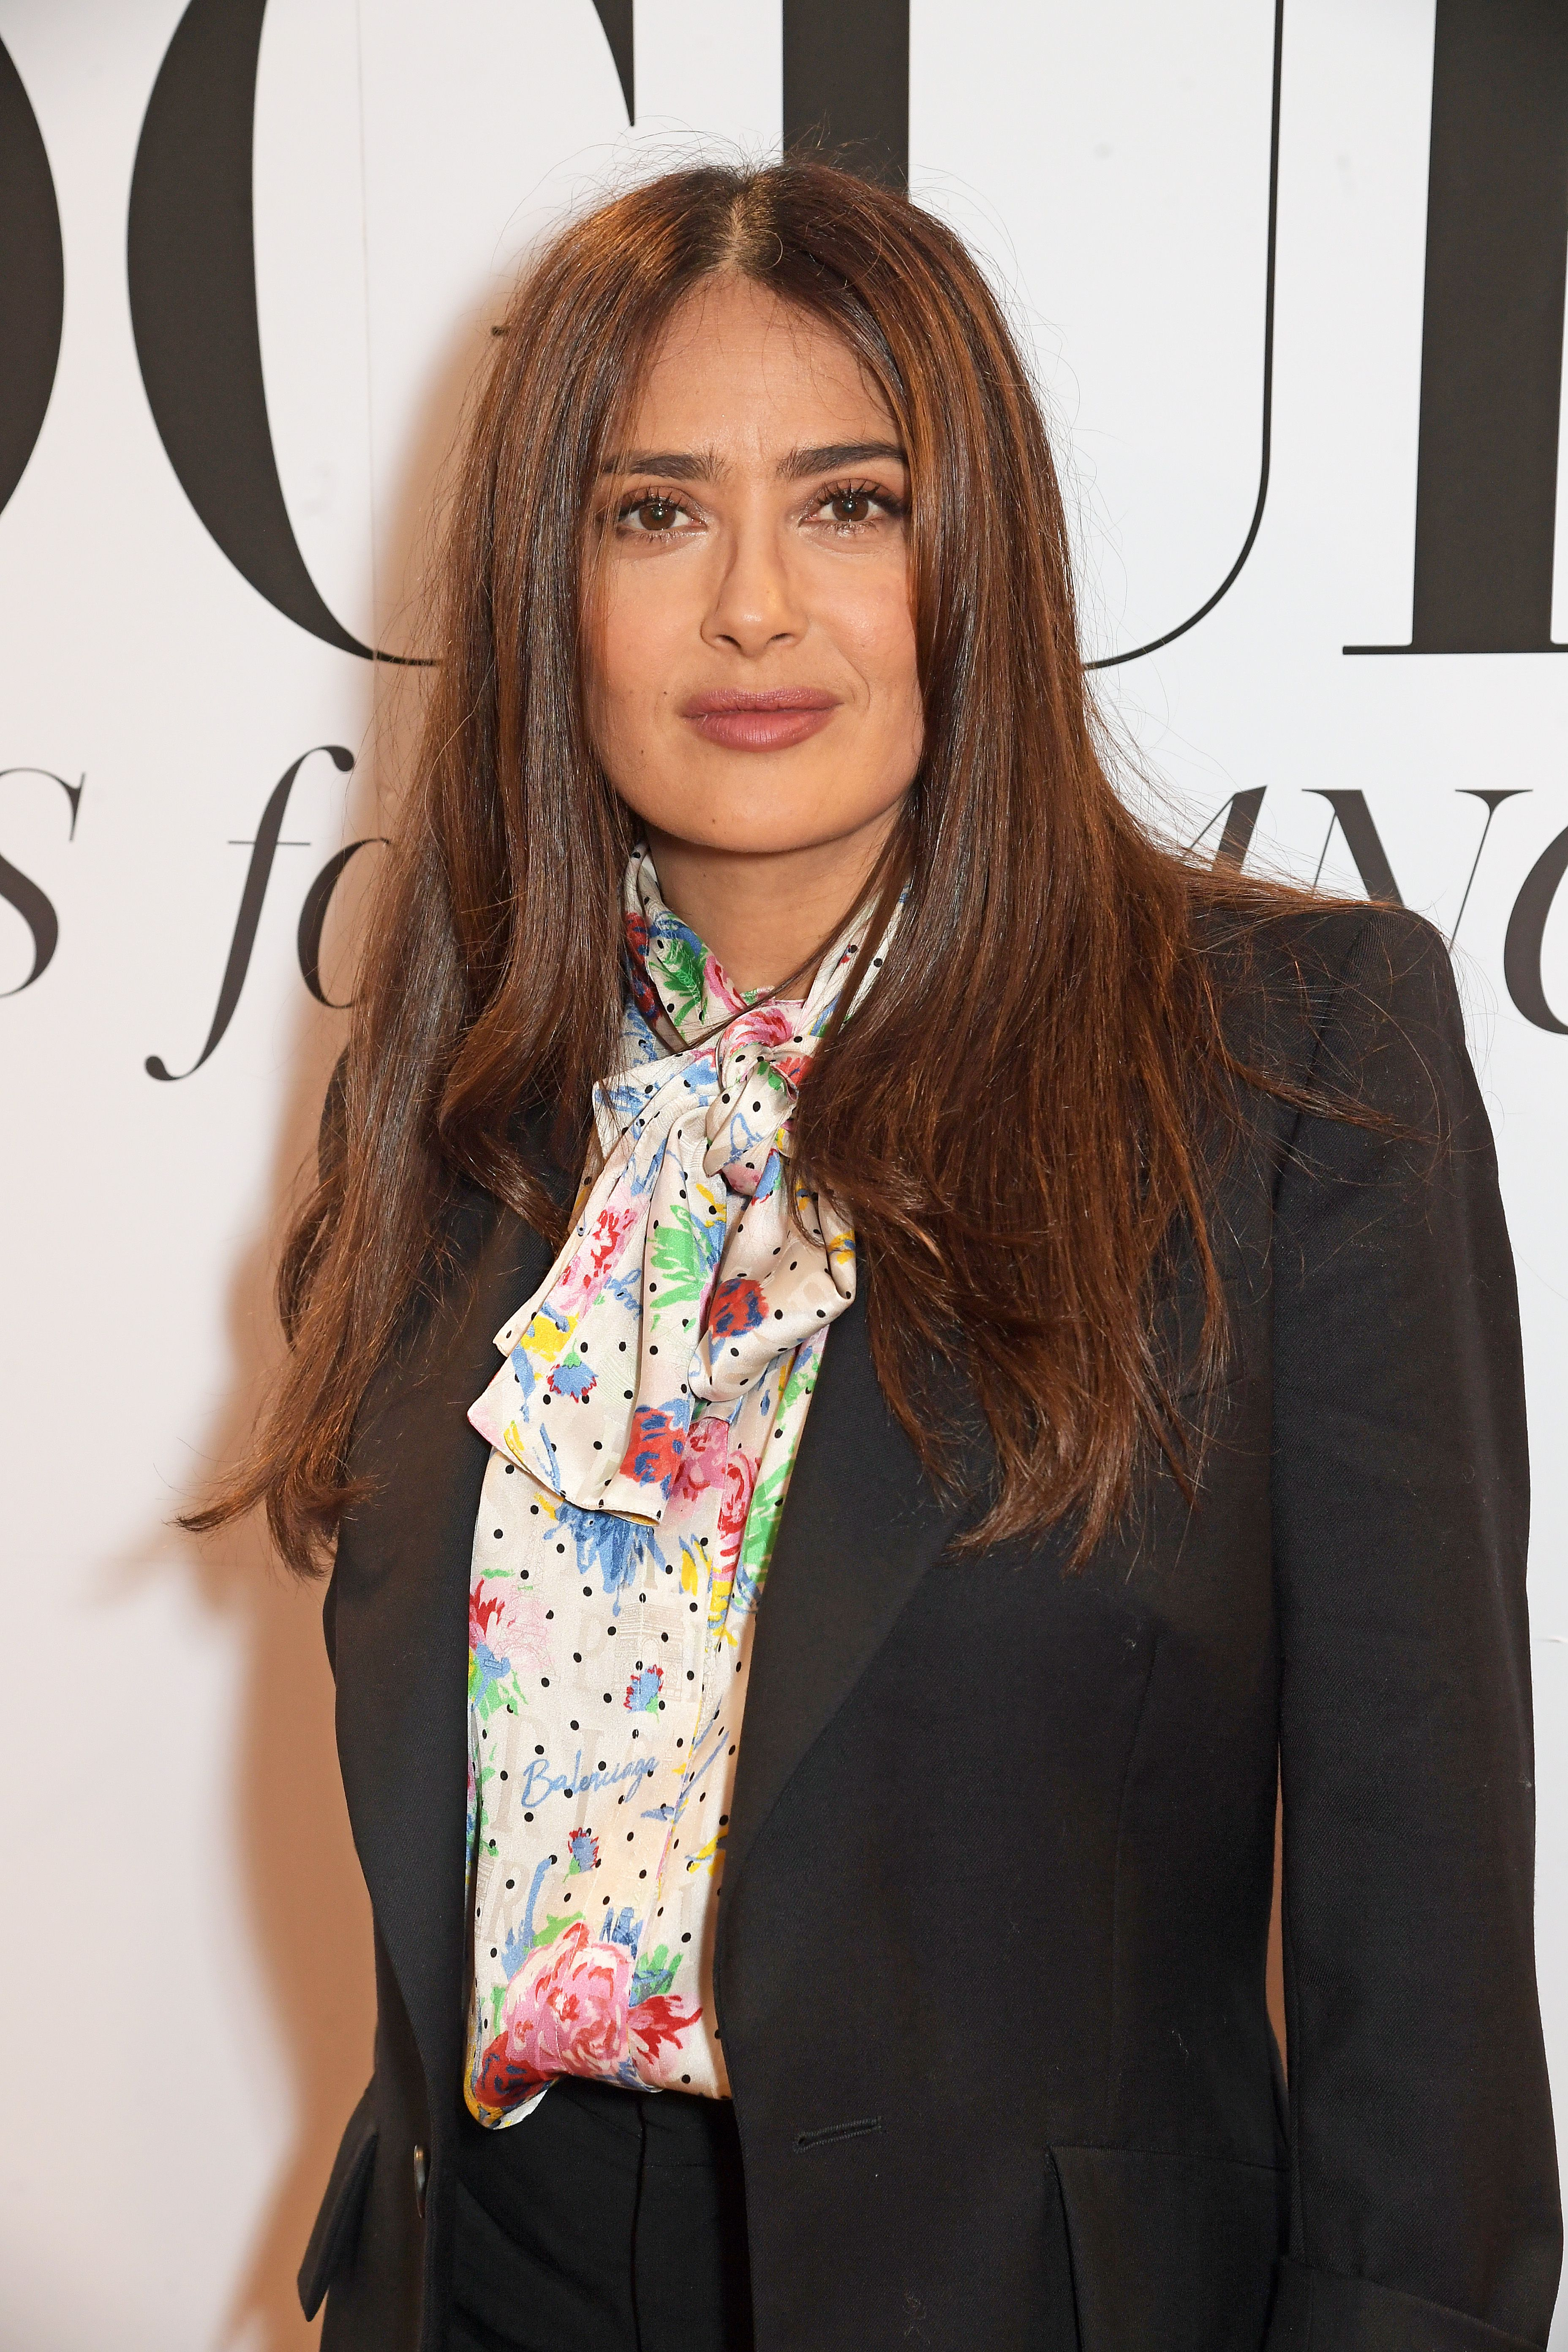 Salma Hayek at the  British Vogue's Forces For Change in London on March 7, 2020   Getty Images